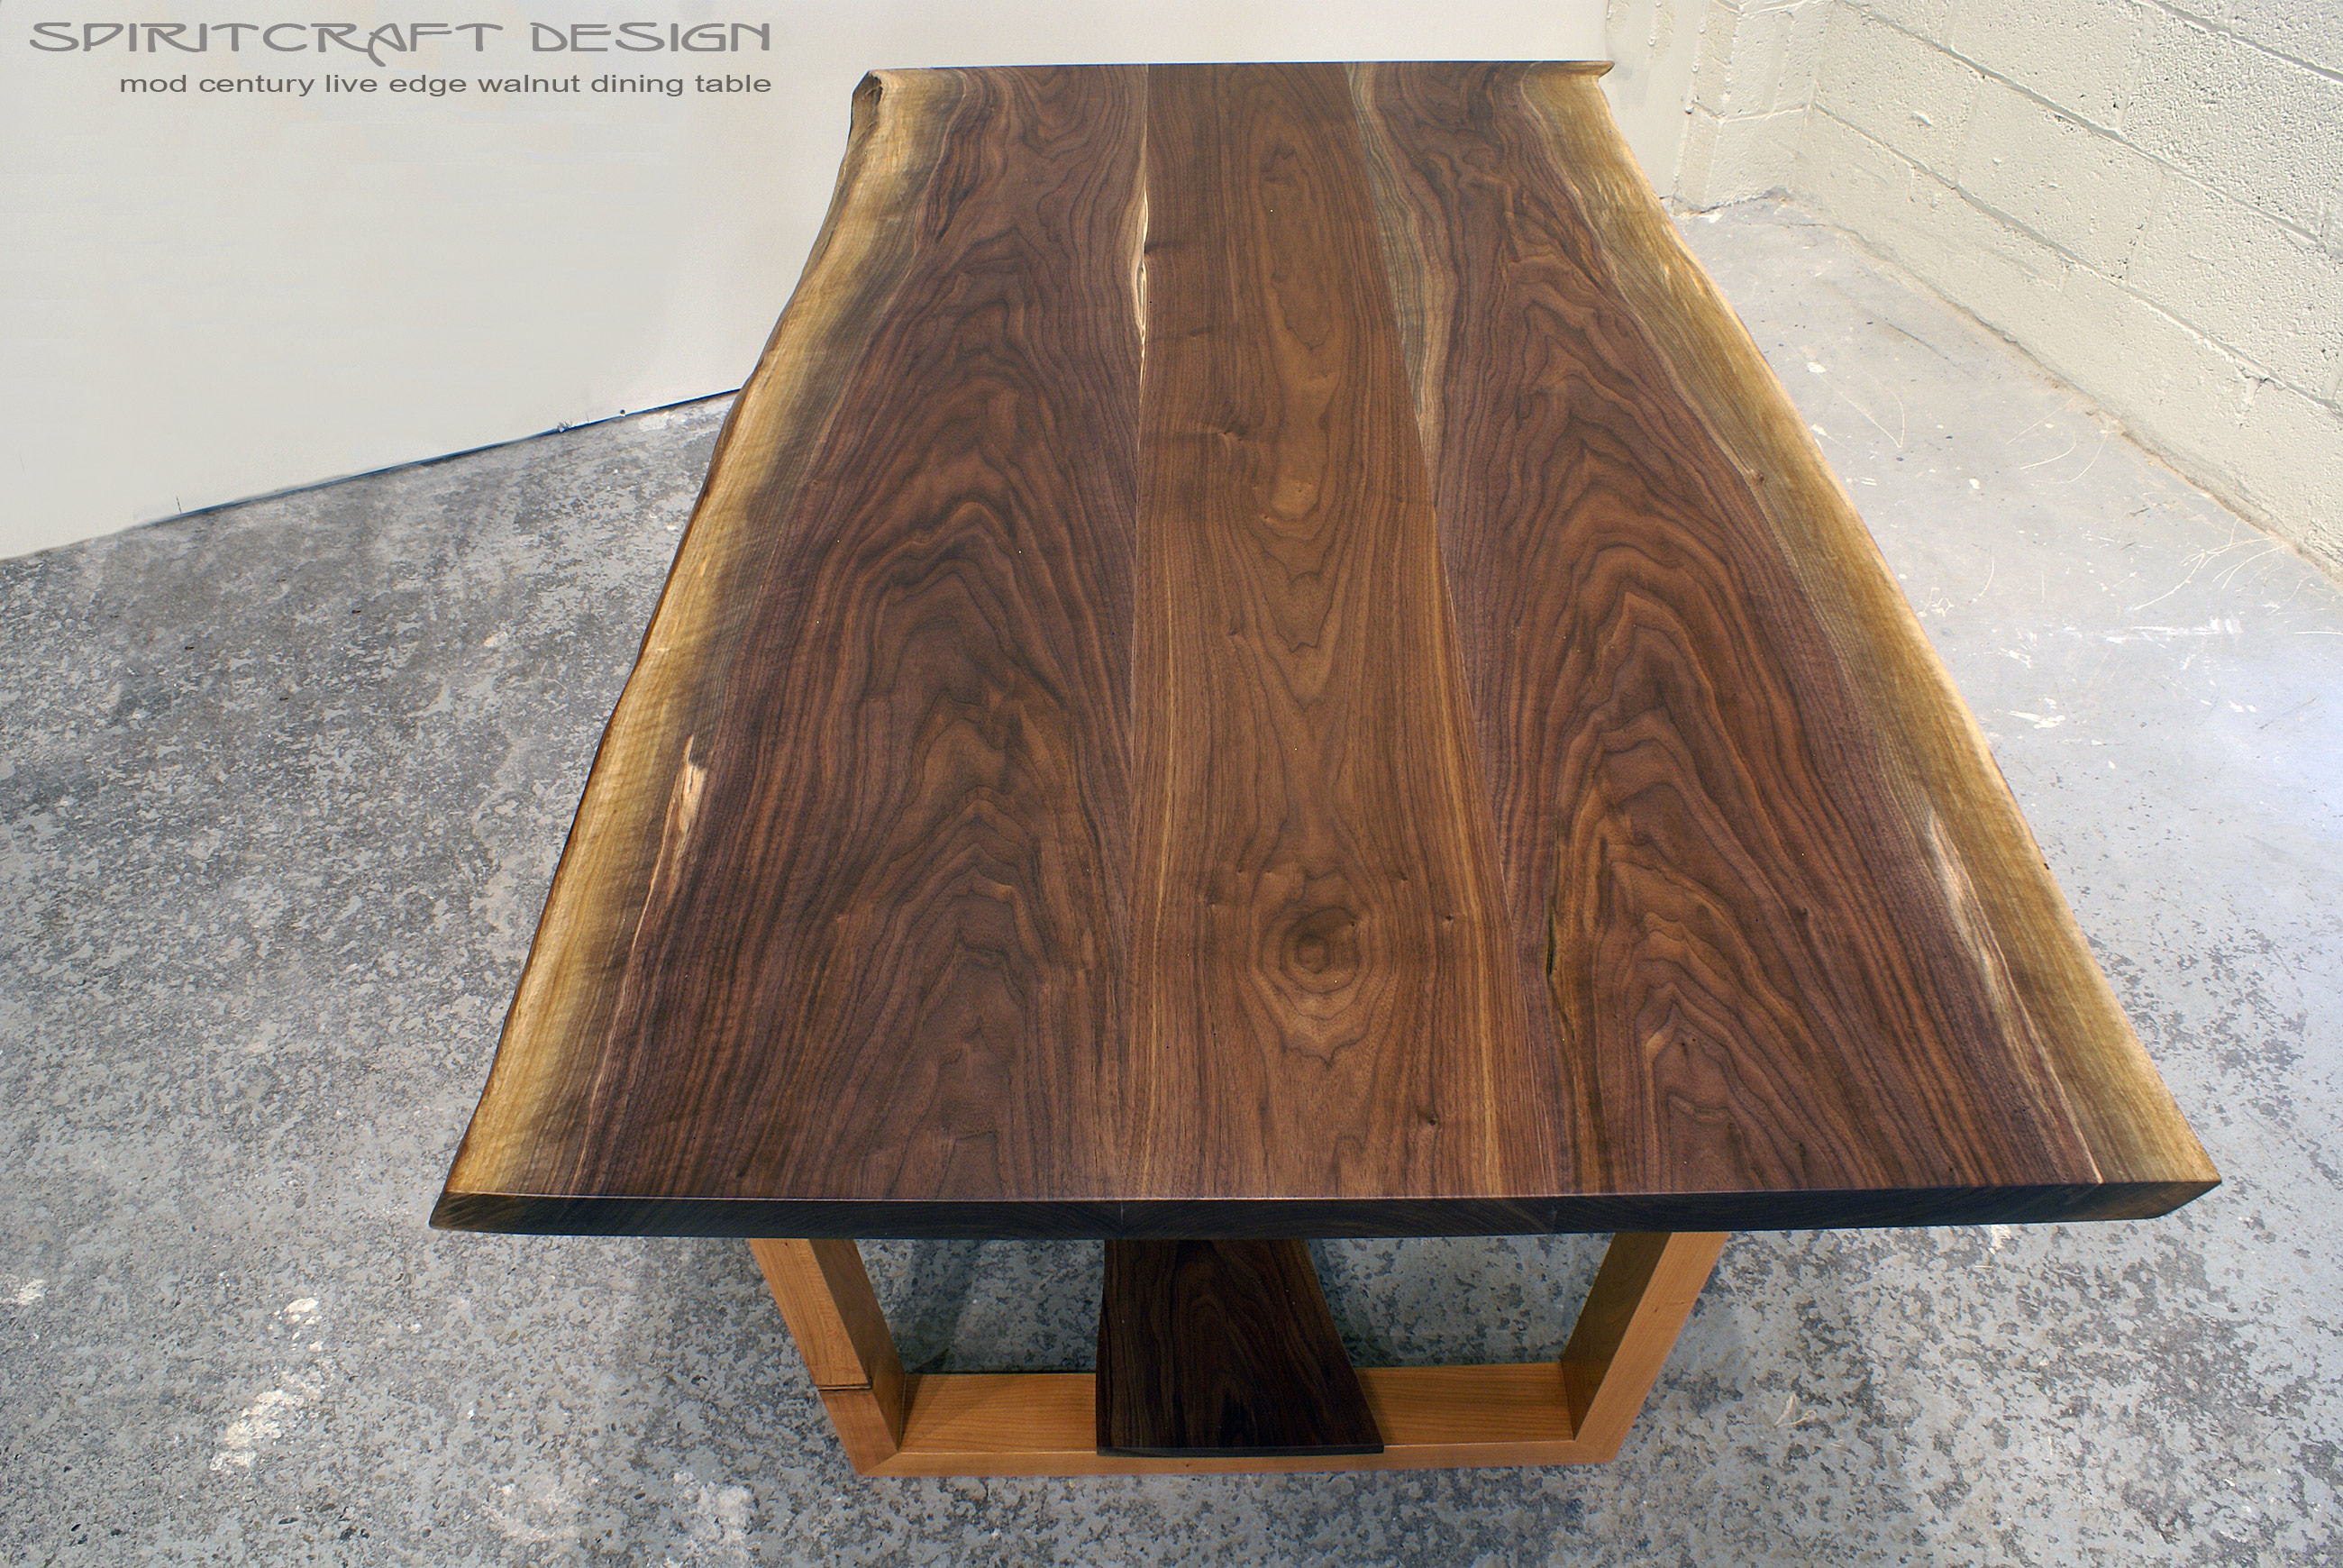 Live Edge Walnut Dining Table In Our Original Mid Century Leg Design.  Features Book